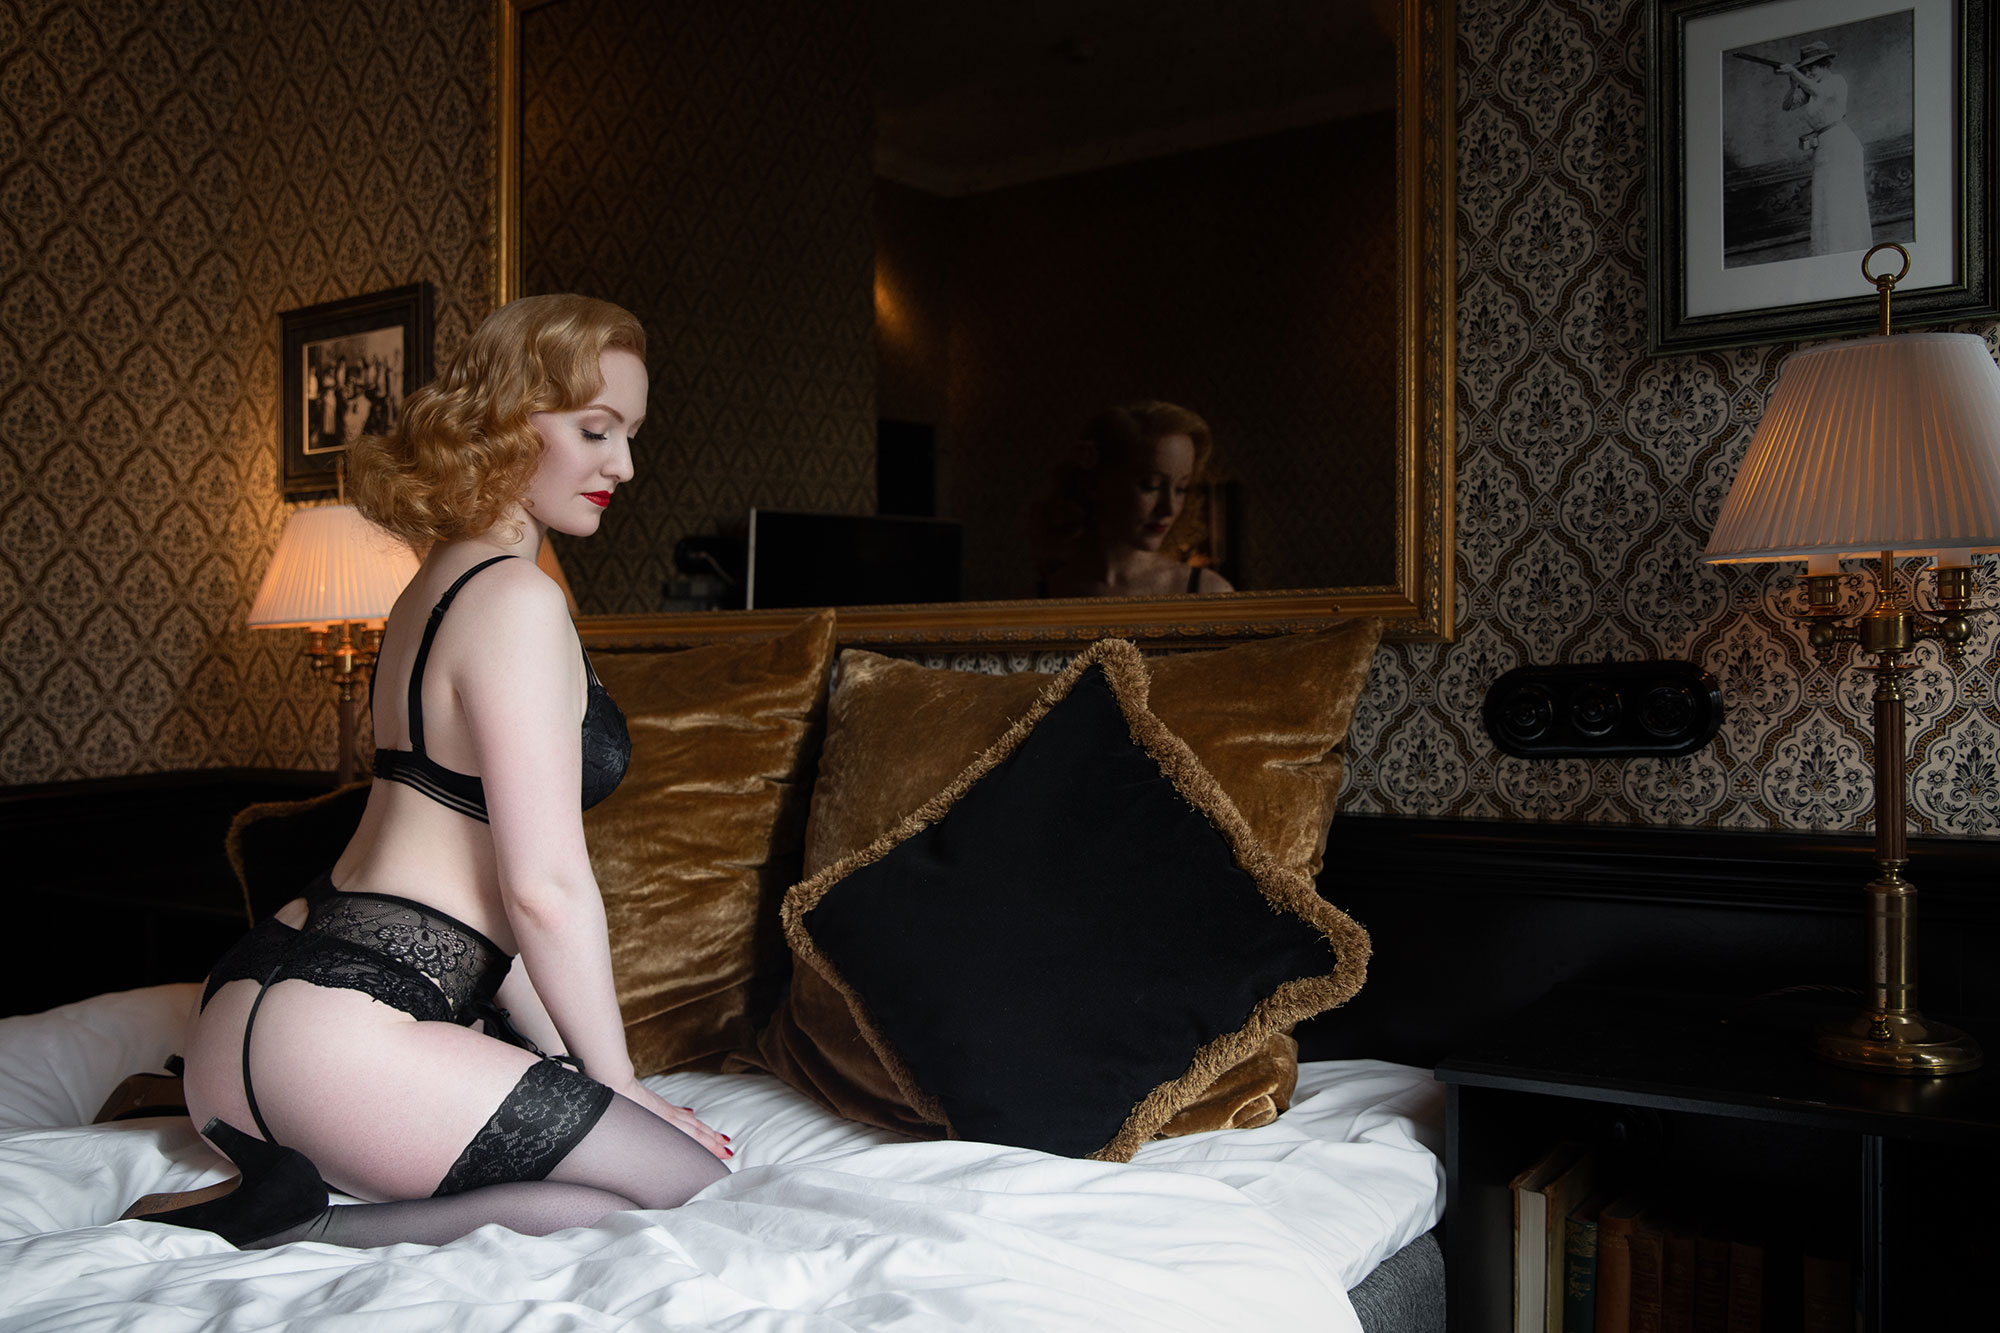 Vintage Pinup Makeover Shoots with Miss Victory Violet at Hotel Pigalle, Gothenburg Goteborg © Tigz Rice 2018. https://www.tigzrice.com